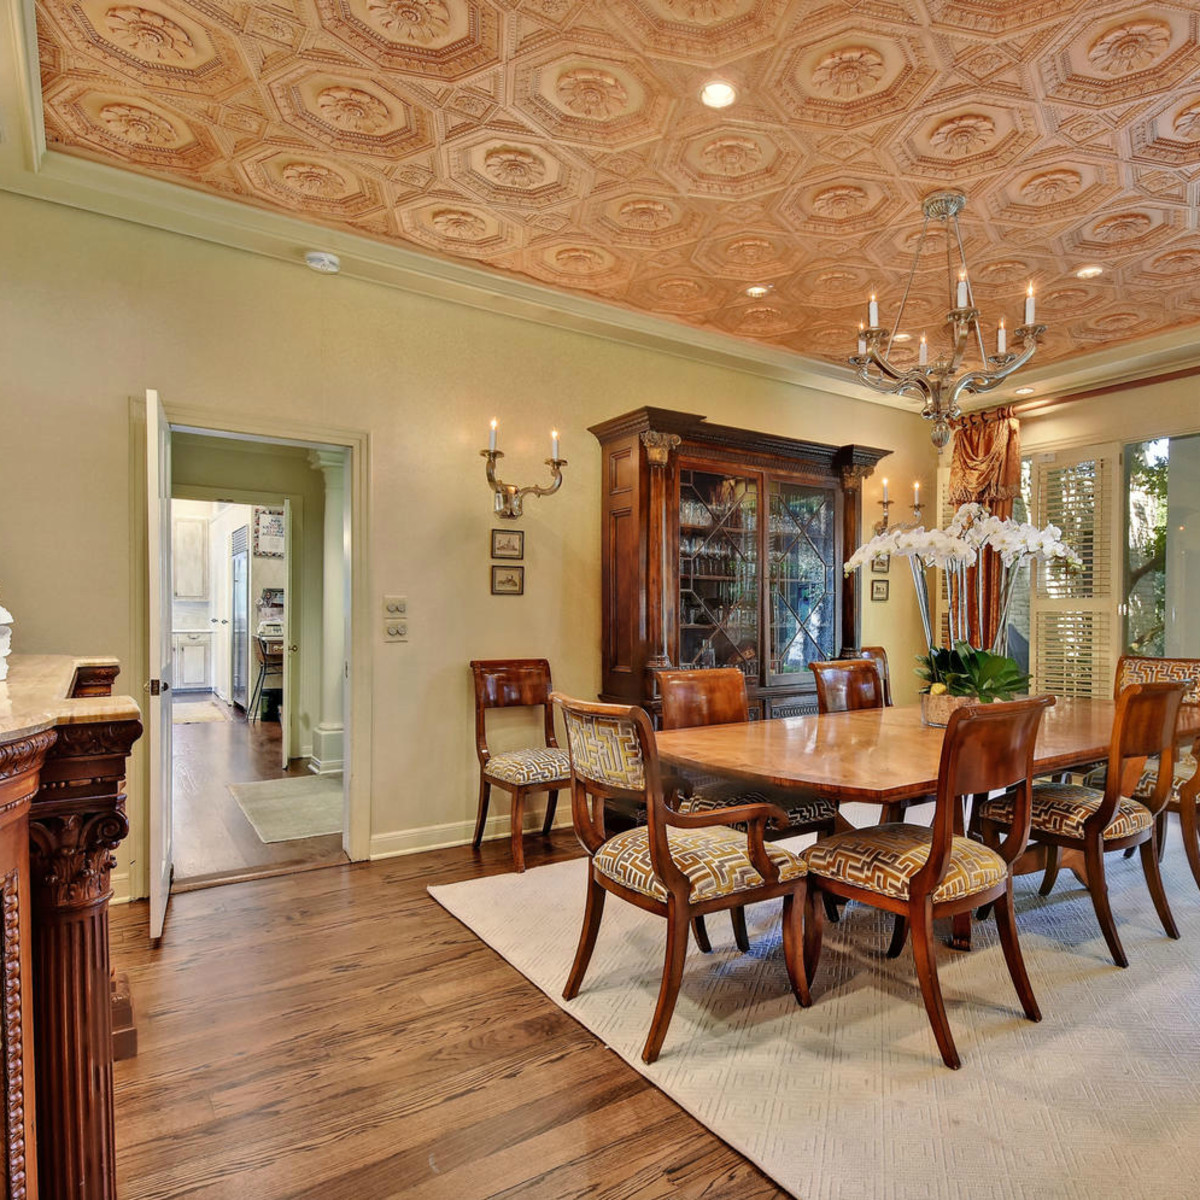 Austin house home Tarrytown 2610 Kenmore Court Ben Crenshaw February 2016 dining